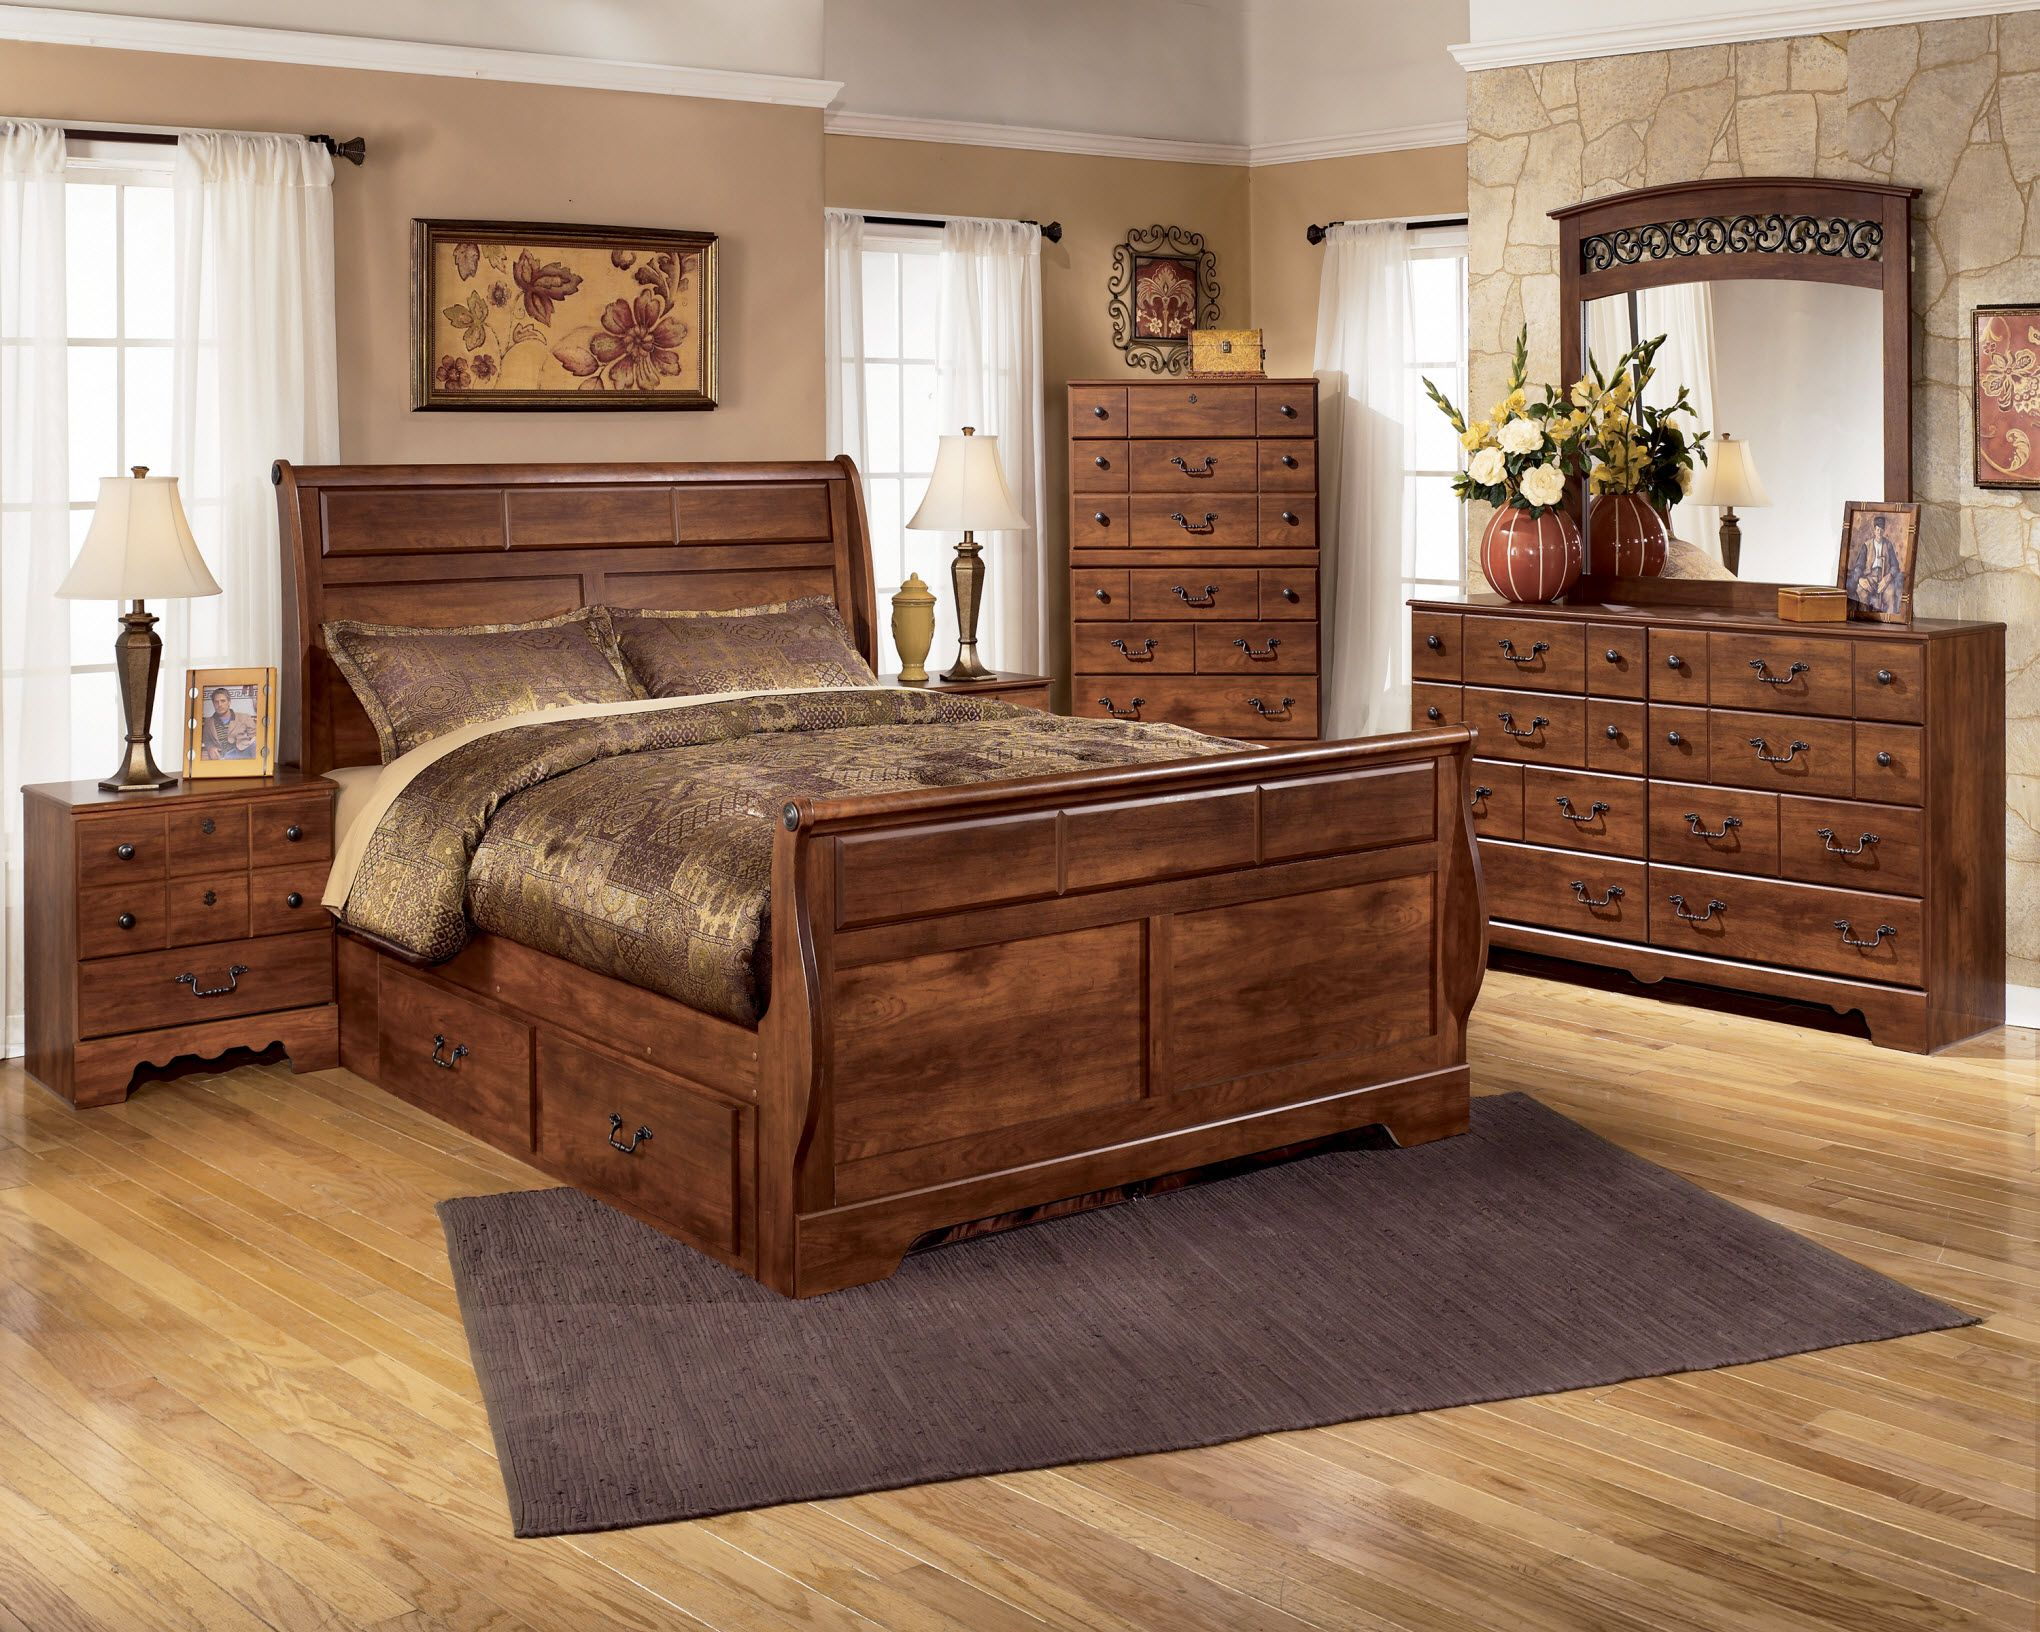 Ashley Furniture Gallery As B258 B258 Timberline Ashley Bedroom Set Sleigh Bedroom Set